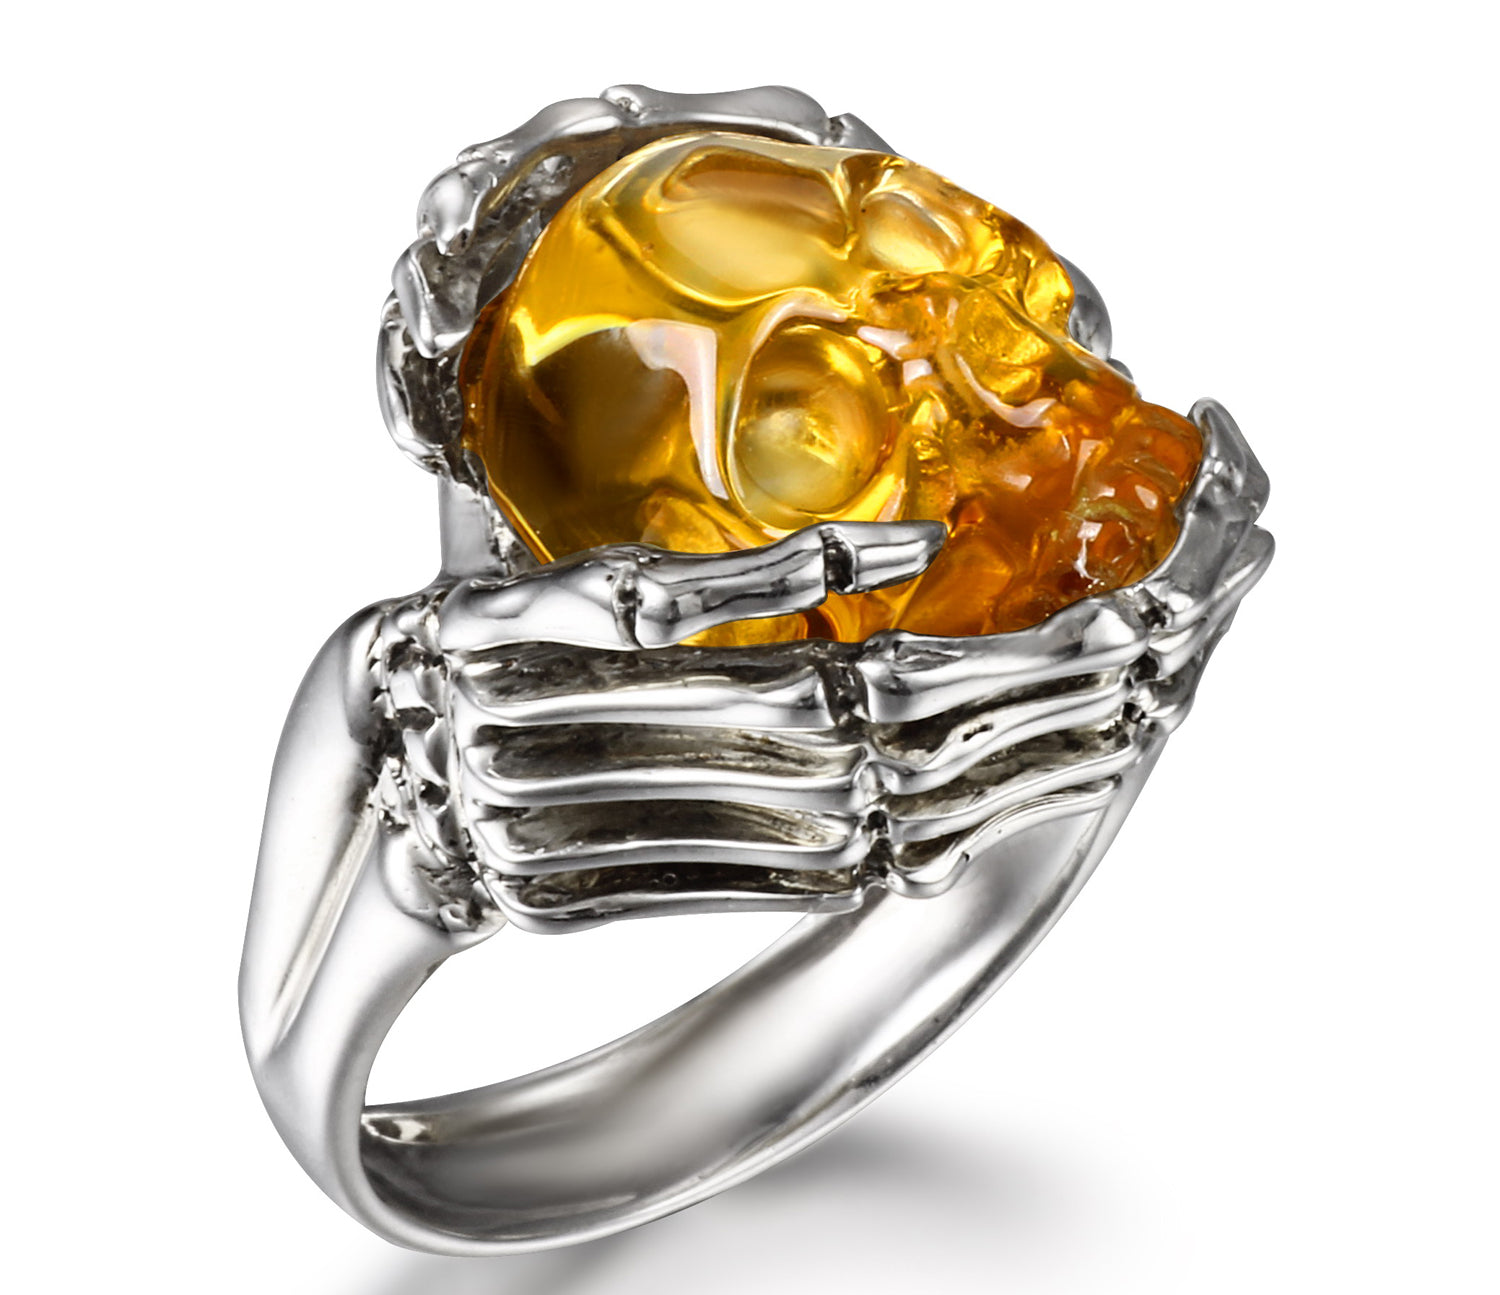 Remember Forever - Ring of Citrine Carved Gemstone Crystal Skull in Sterling Silver Skeletal Hands